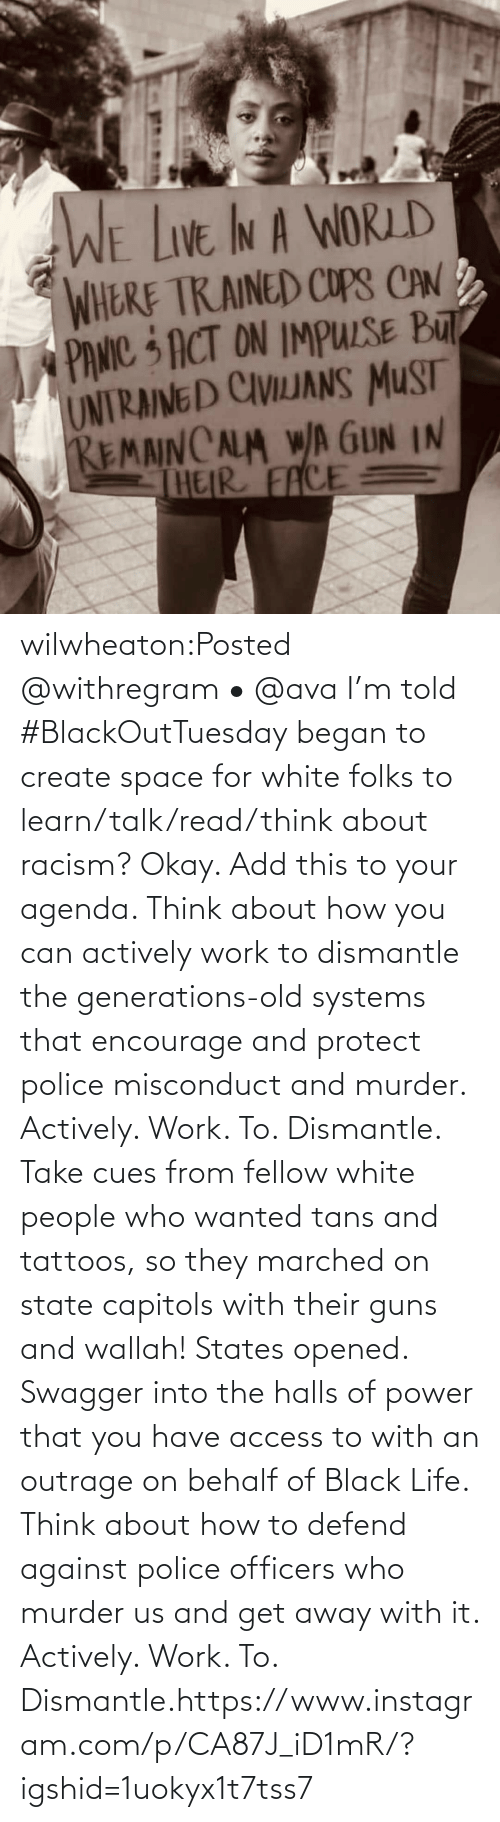 Instagram: wilwheaton:Posted @withregram • @ava I'm told #BlackOutTuesday began to create space for white folks to learn/talk/read/think about racism? Okay. Add this to your agenda. Think about how you can actively work to dismantle the generations-old systems that encourage and protect police misconduct and murder. Actively. Work. To. Dismantle. Take cues from fellow white people who wanted tans and tattoos, so they marched on state capitols with their guns and wallah! States opened. Swagger into the halls of power that you have access to with an outrage on behalf of Black Life. Think about how to defend against police officers who murder us and get away with it. Actively. Work. To. Dismantle.https://www.instagram.com/p/CA87J_iD1mR/?igshid=1uokyx1t7tss7